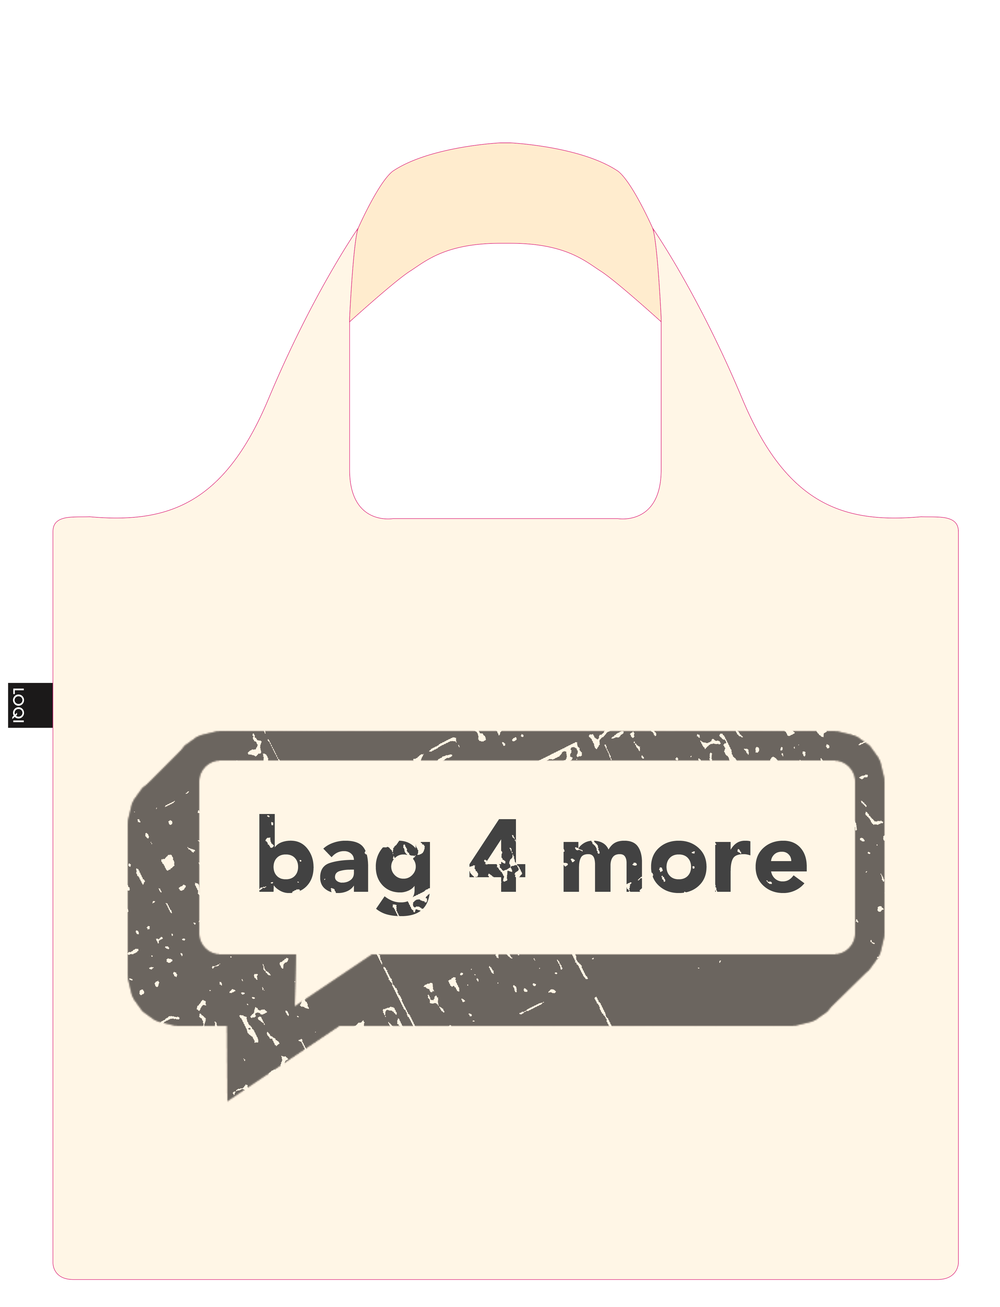 bag speech The action bag therapy idea is way for students to be more active through creative and absurd actions, while targeting articulation errors, language concepts, or fluent speech strategies.